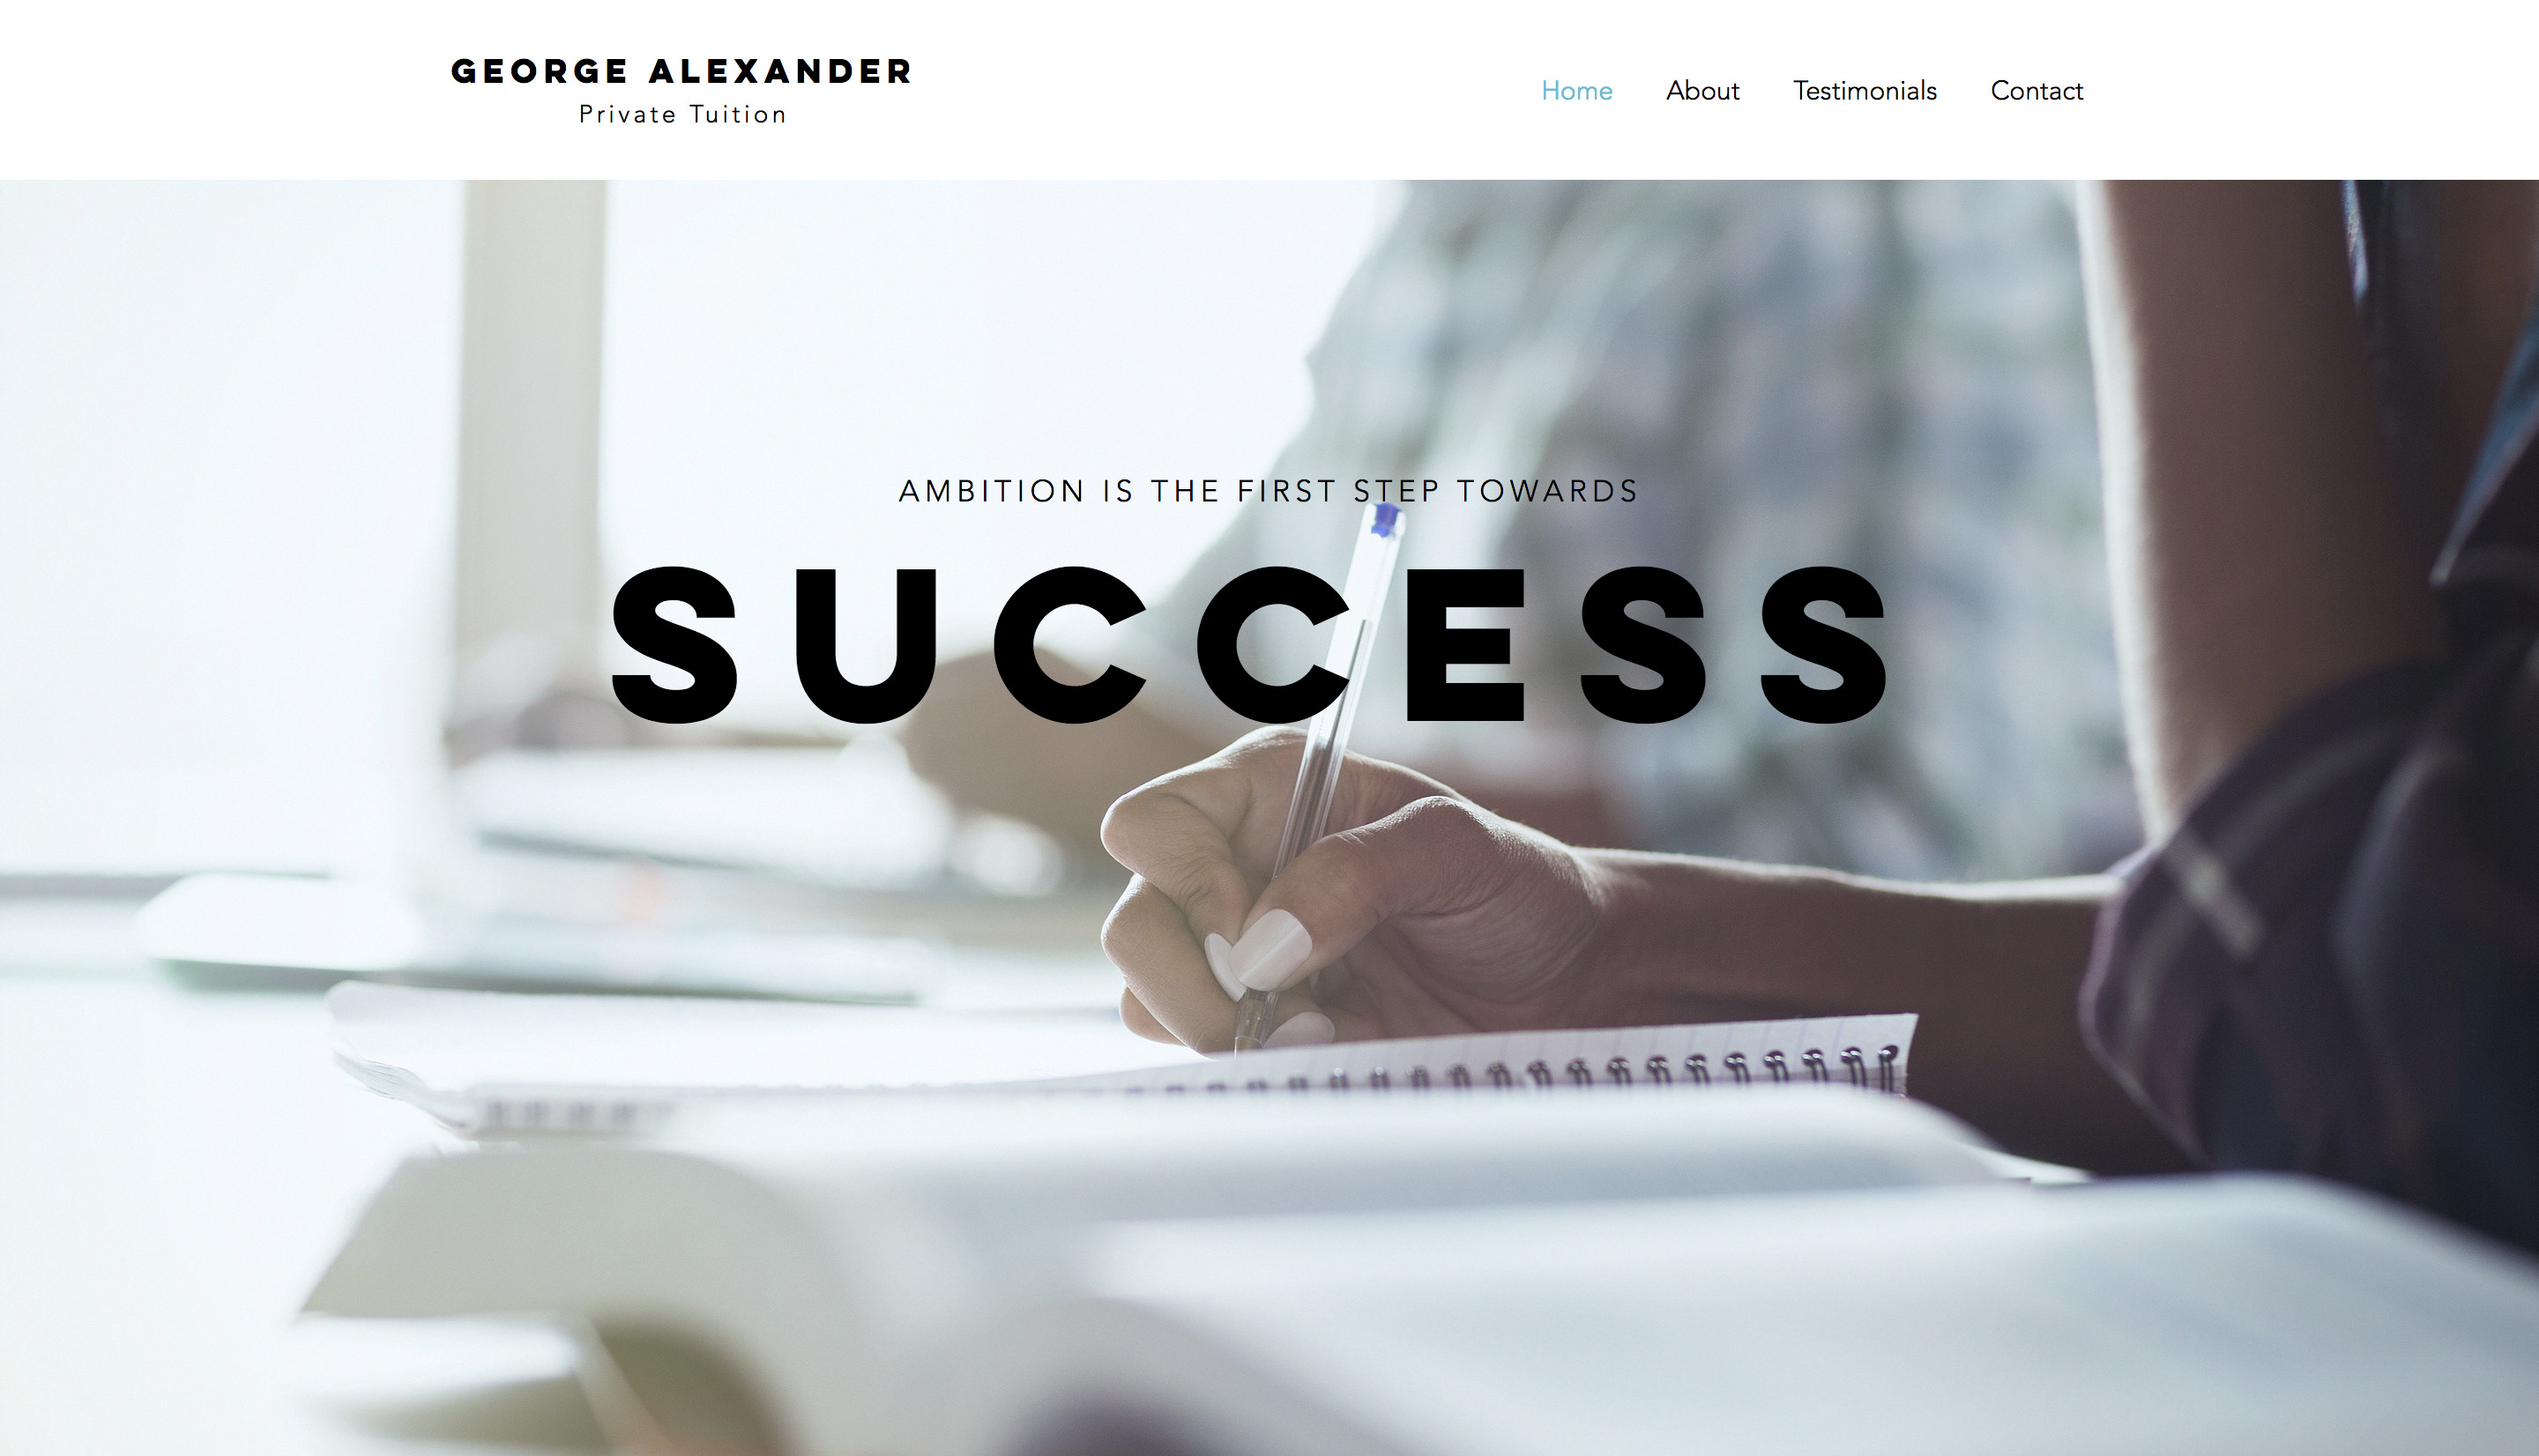 Peter Alexander Tuition